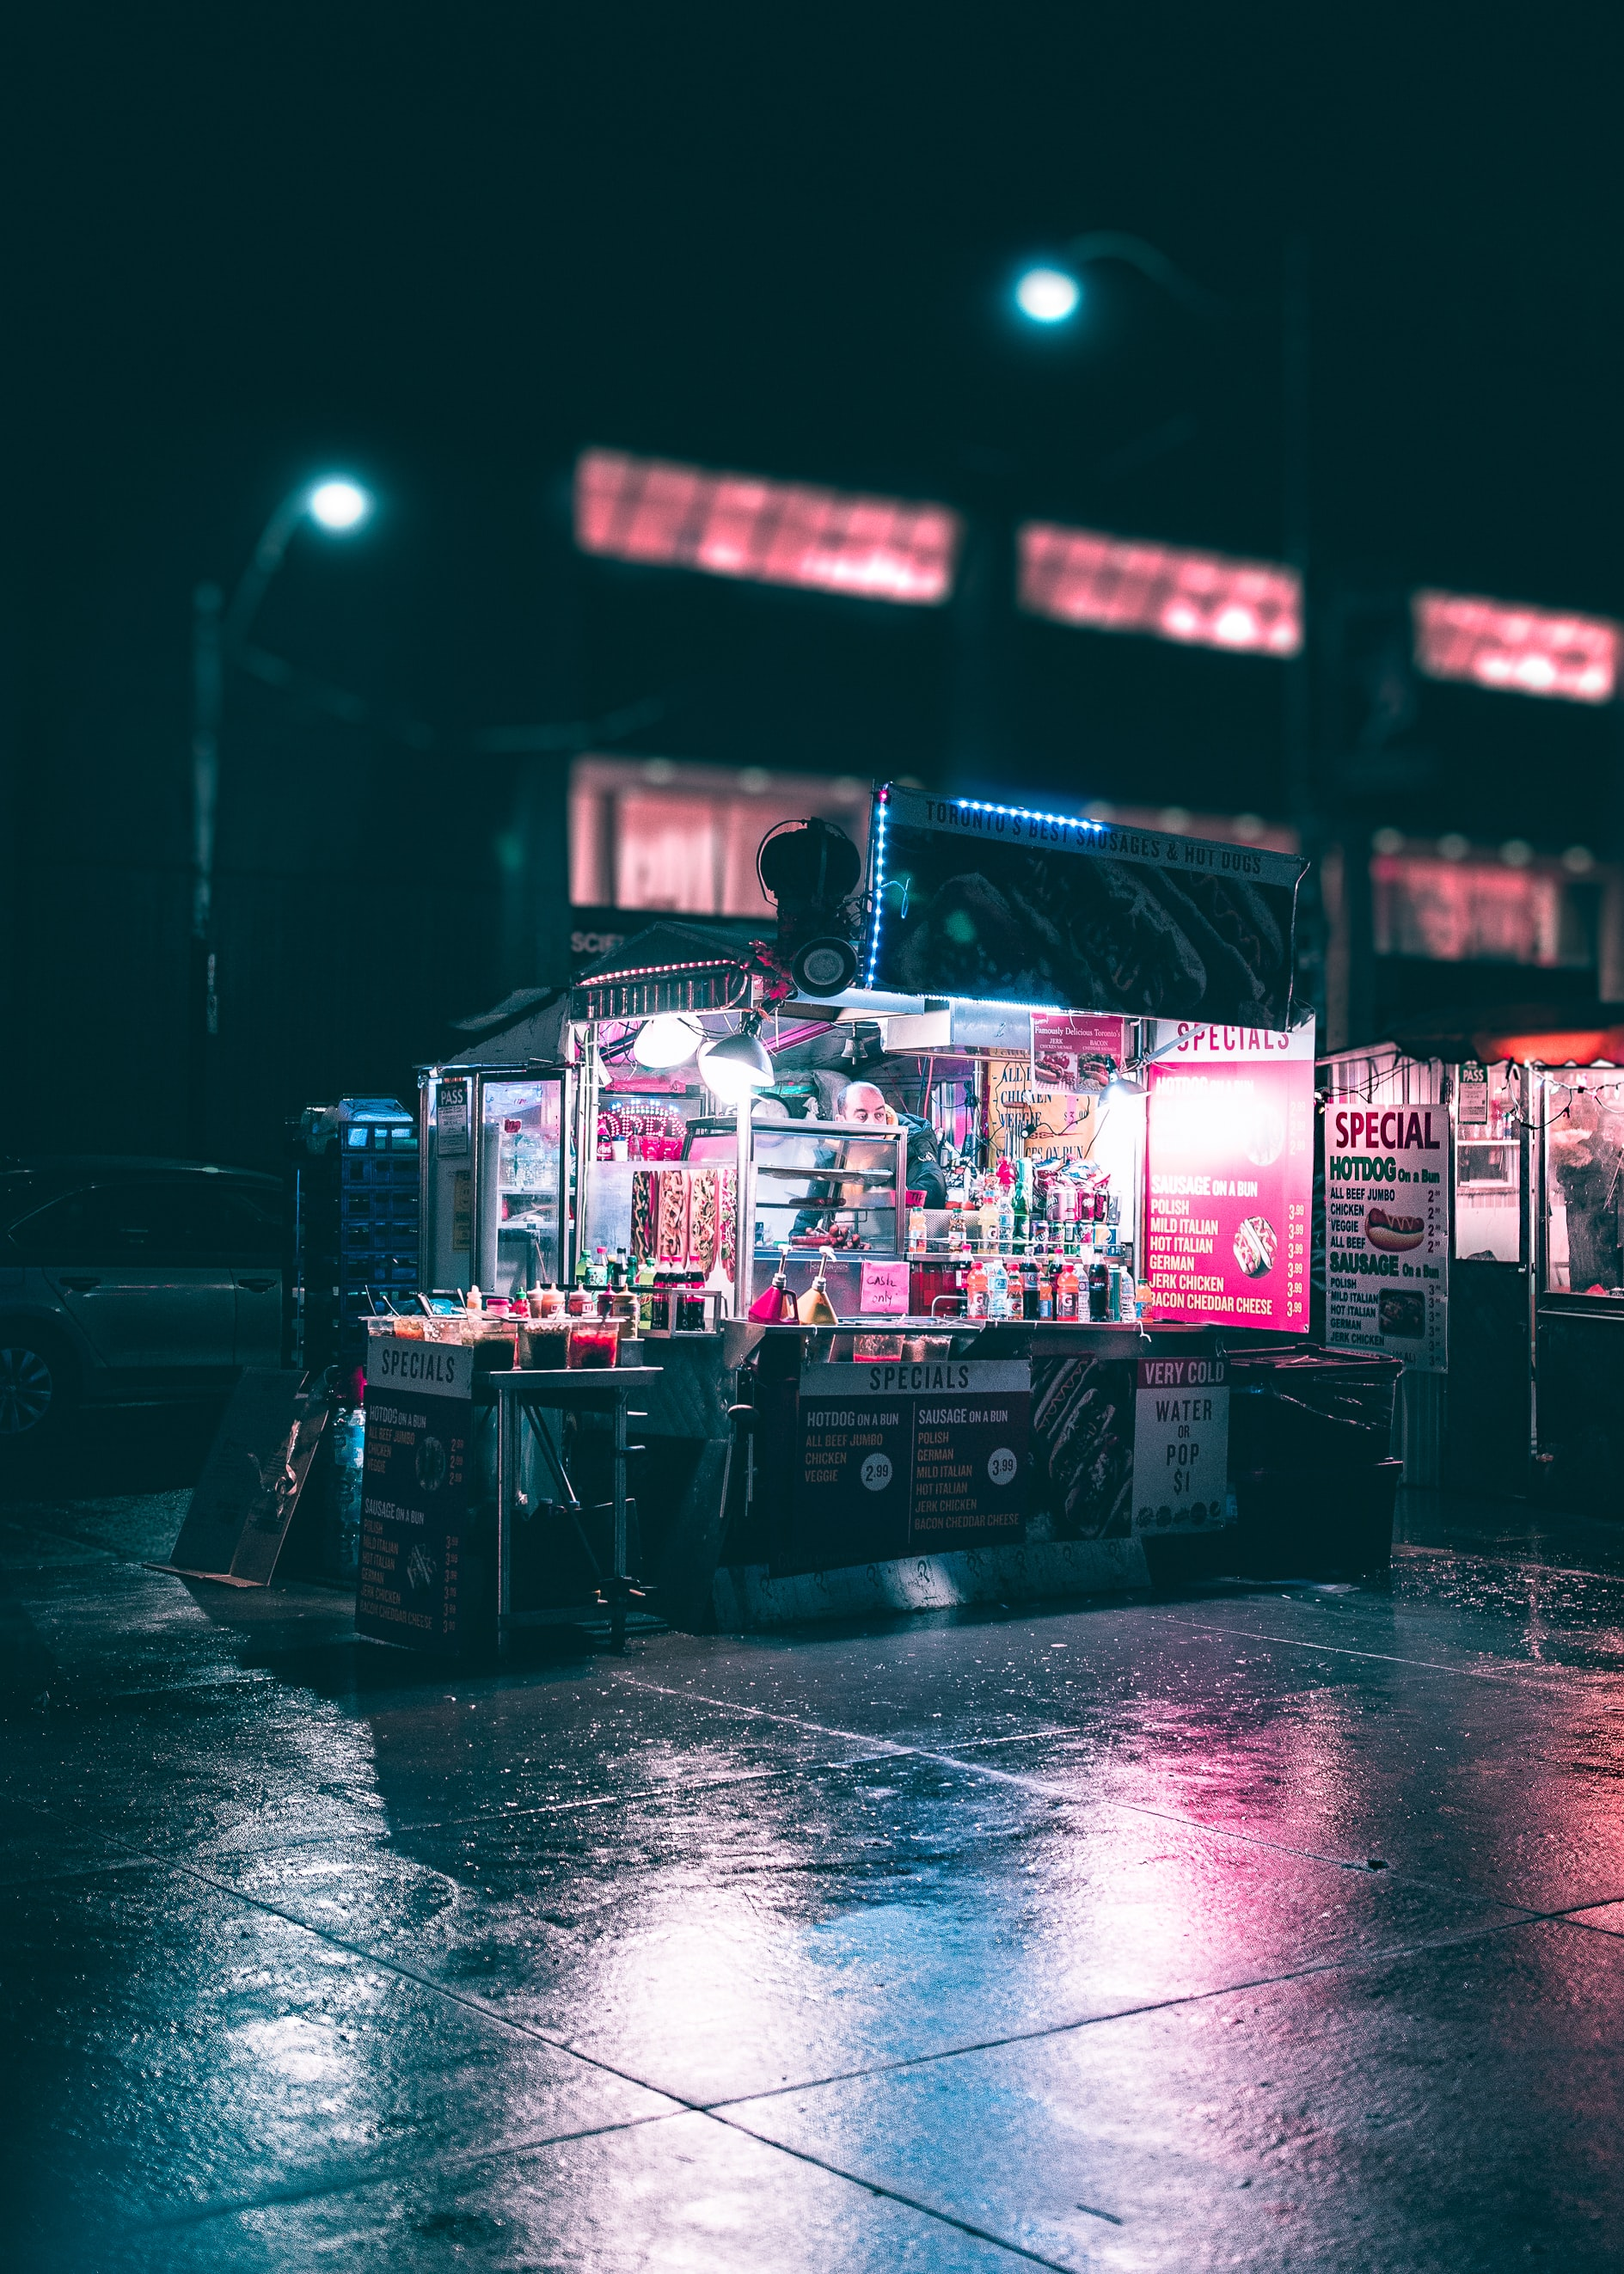 Urban hotdog vendor open and a late night in the city